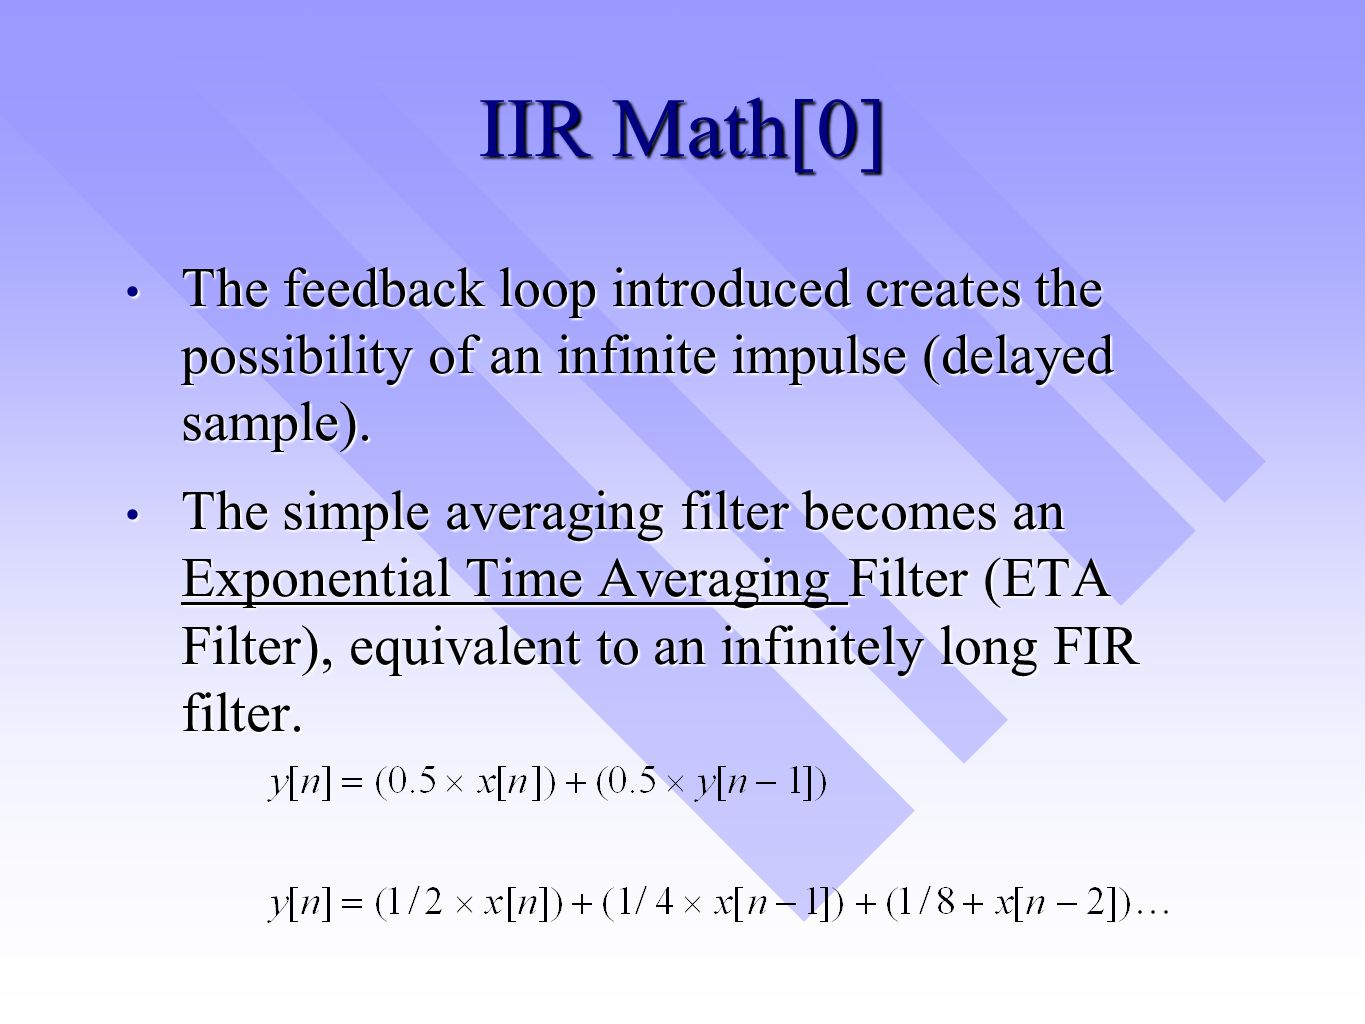 IIR Math[0] The feedback loop introduced creates the possibility of an infinite impulse (delayed sample). The feedback loop introduced creates the pos